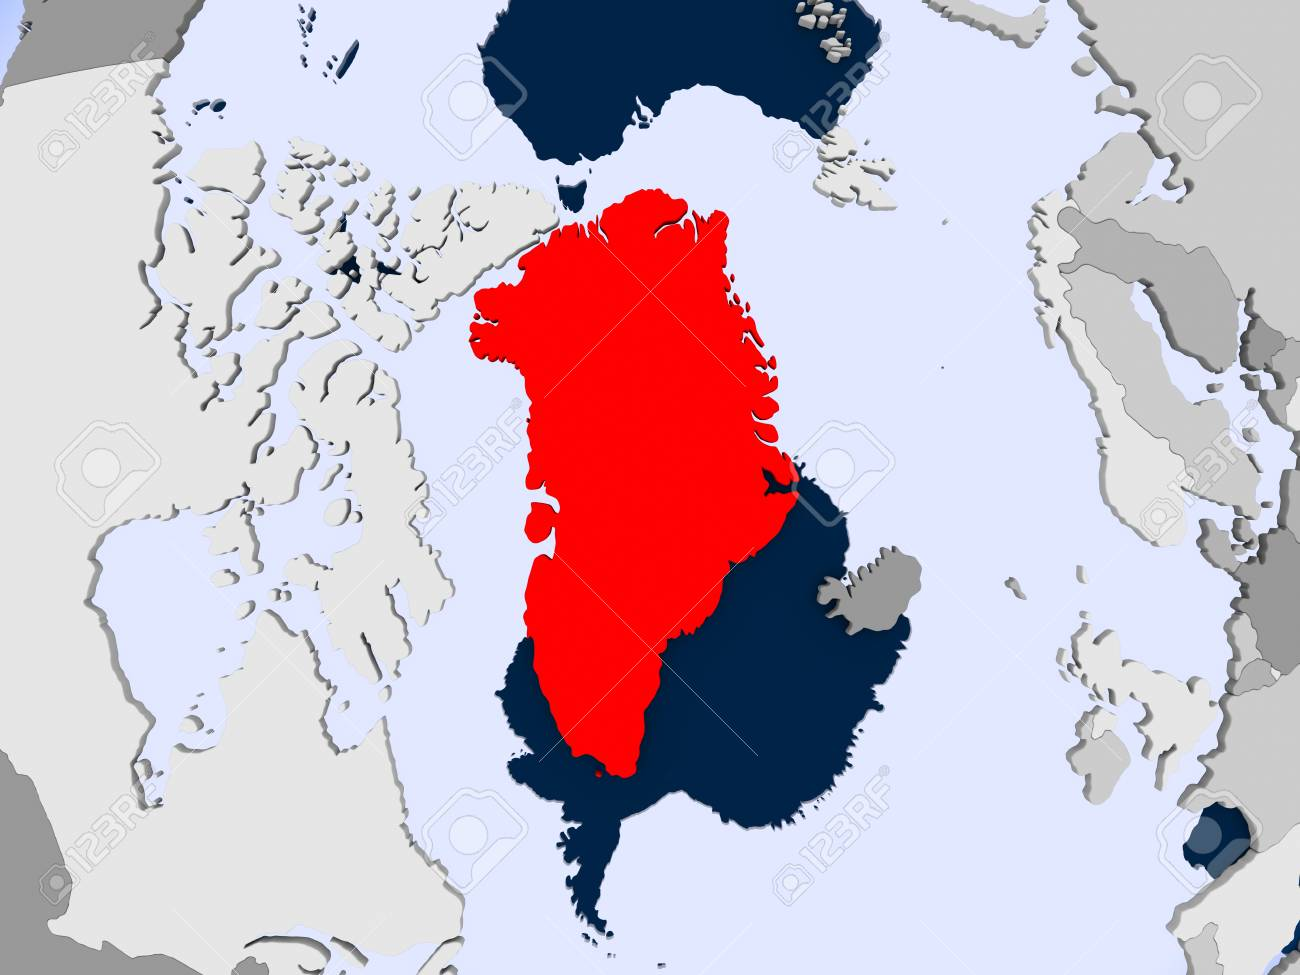 Greenland In Red On Political Map With Transparent Oceans 3d